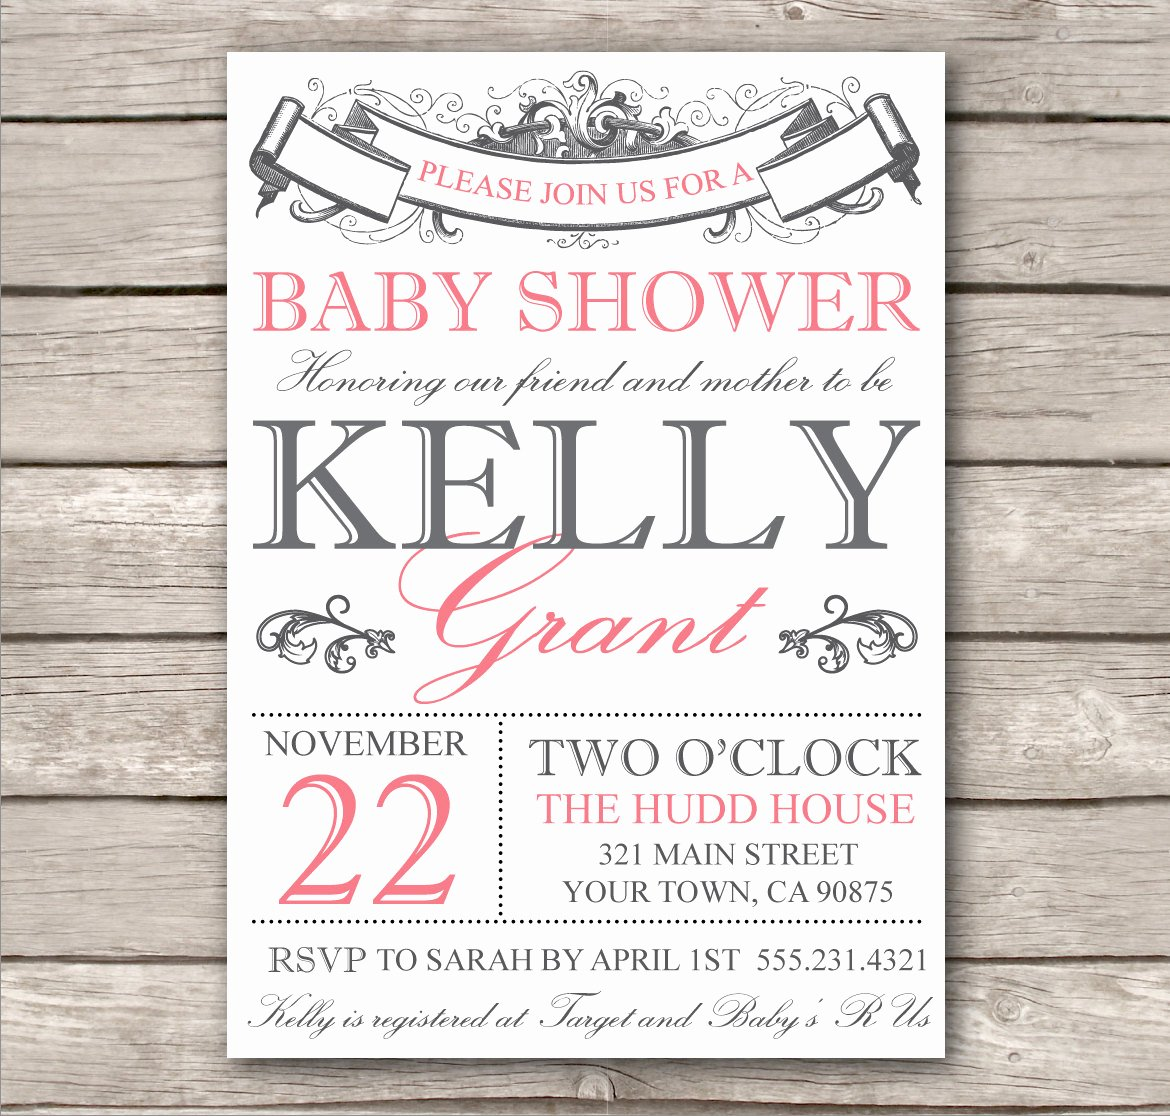 Wedding Shower Invitations Template Luxury Bridal Shower Invitation or Baby Shower Invitation by